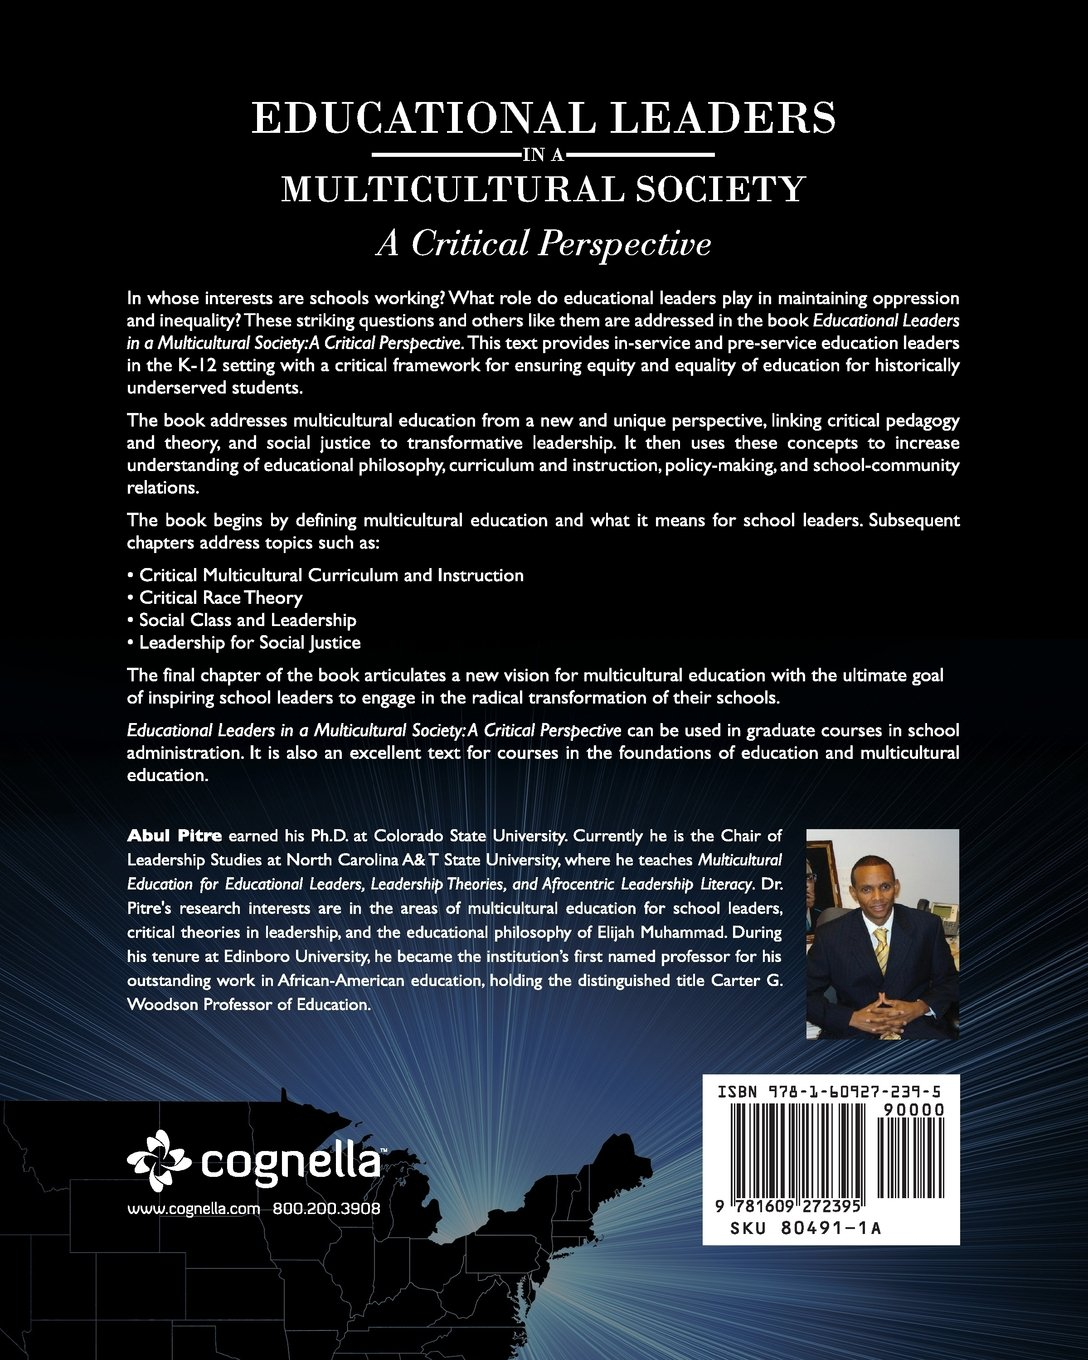 educational leaders in a multicultural society a critical educational leaders in a multicultural society a critical perspective abul pitre mary m hemphill 9781609272395 com books